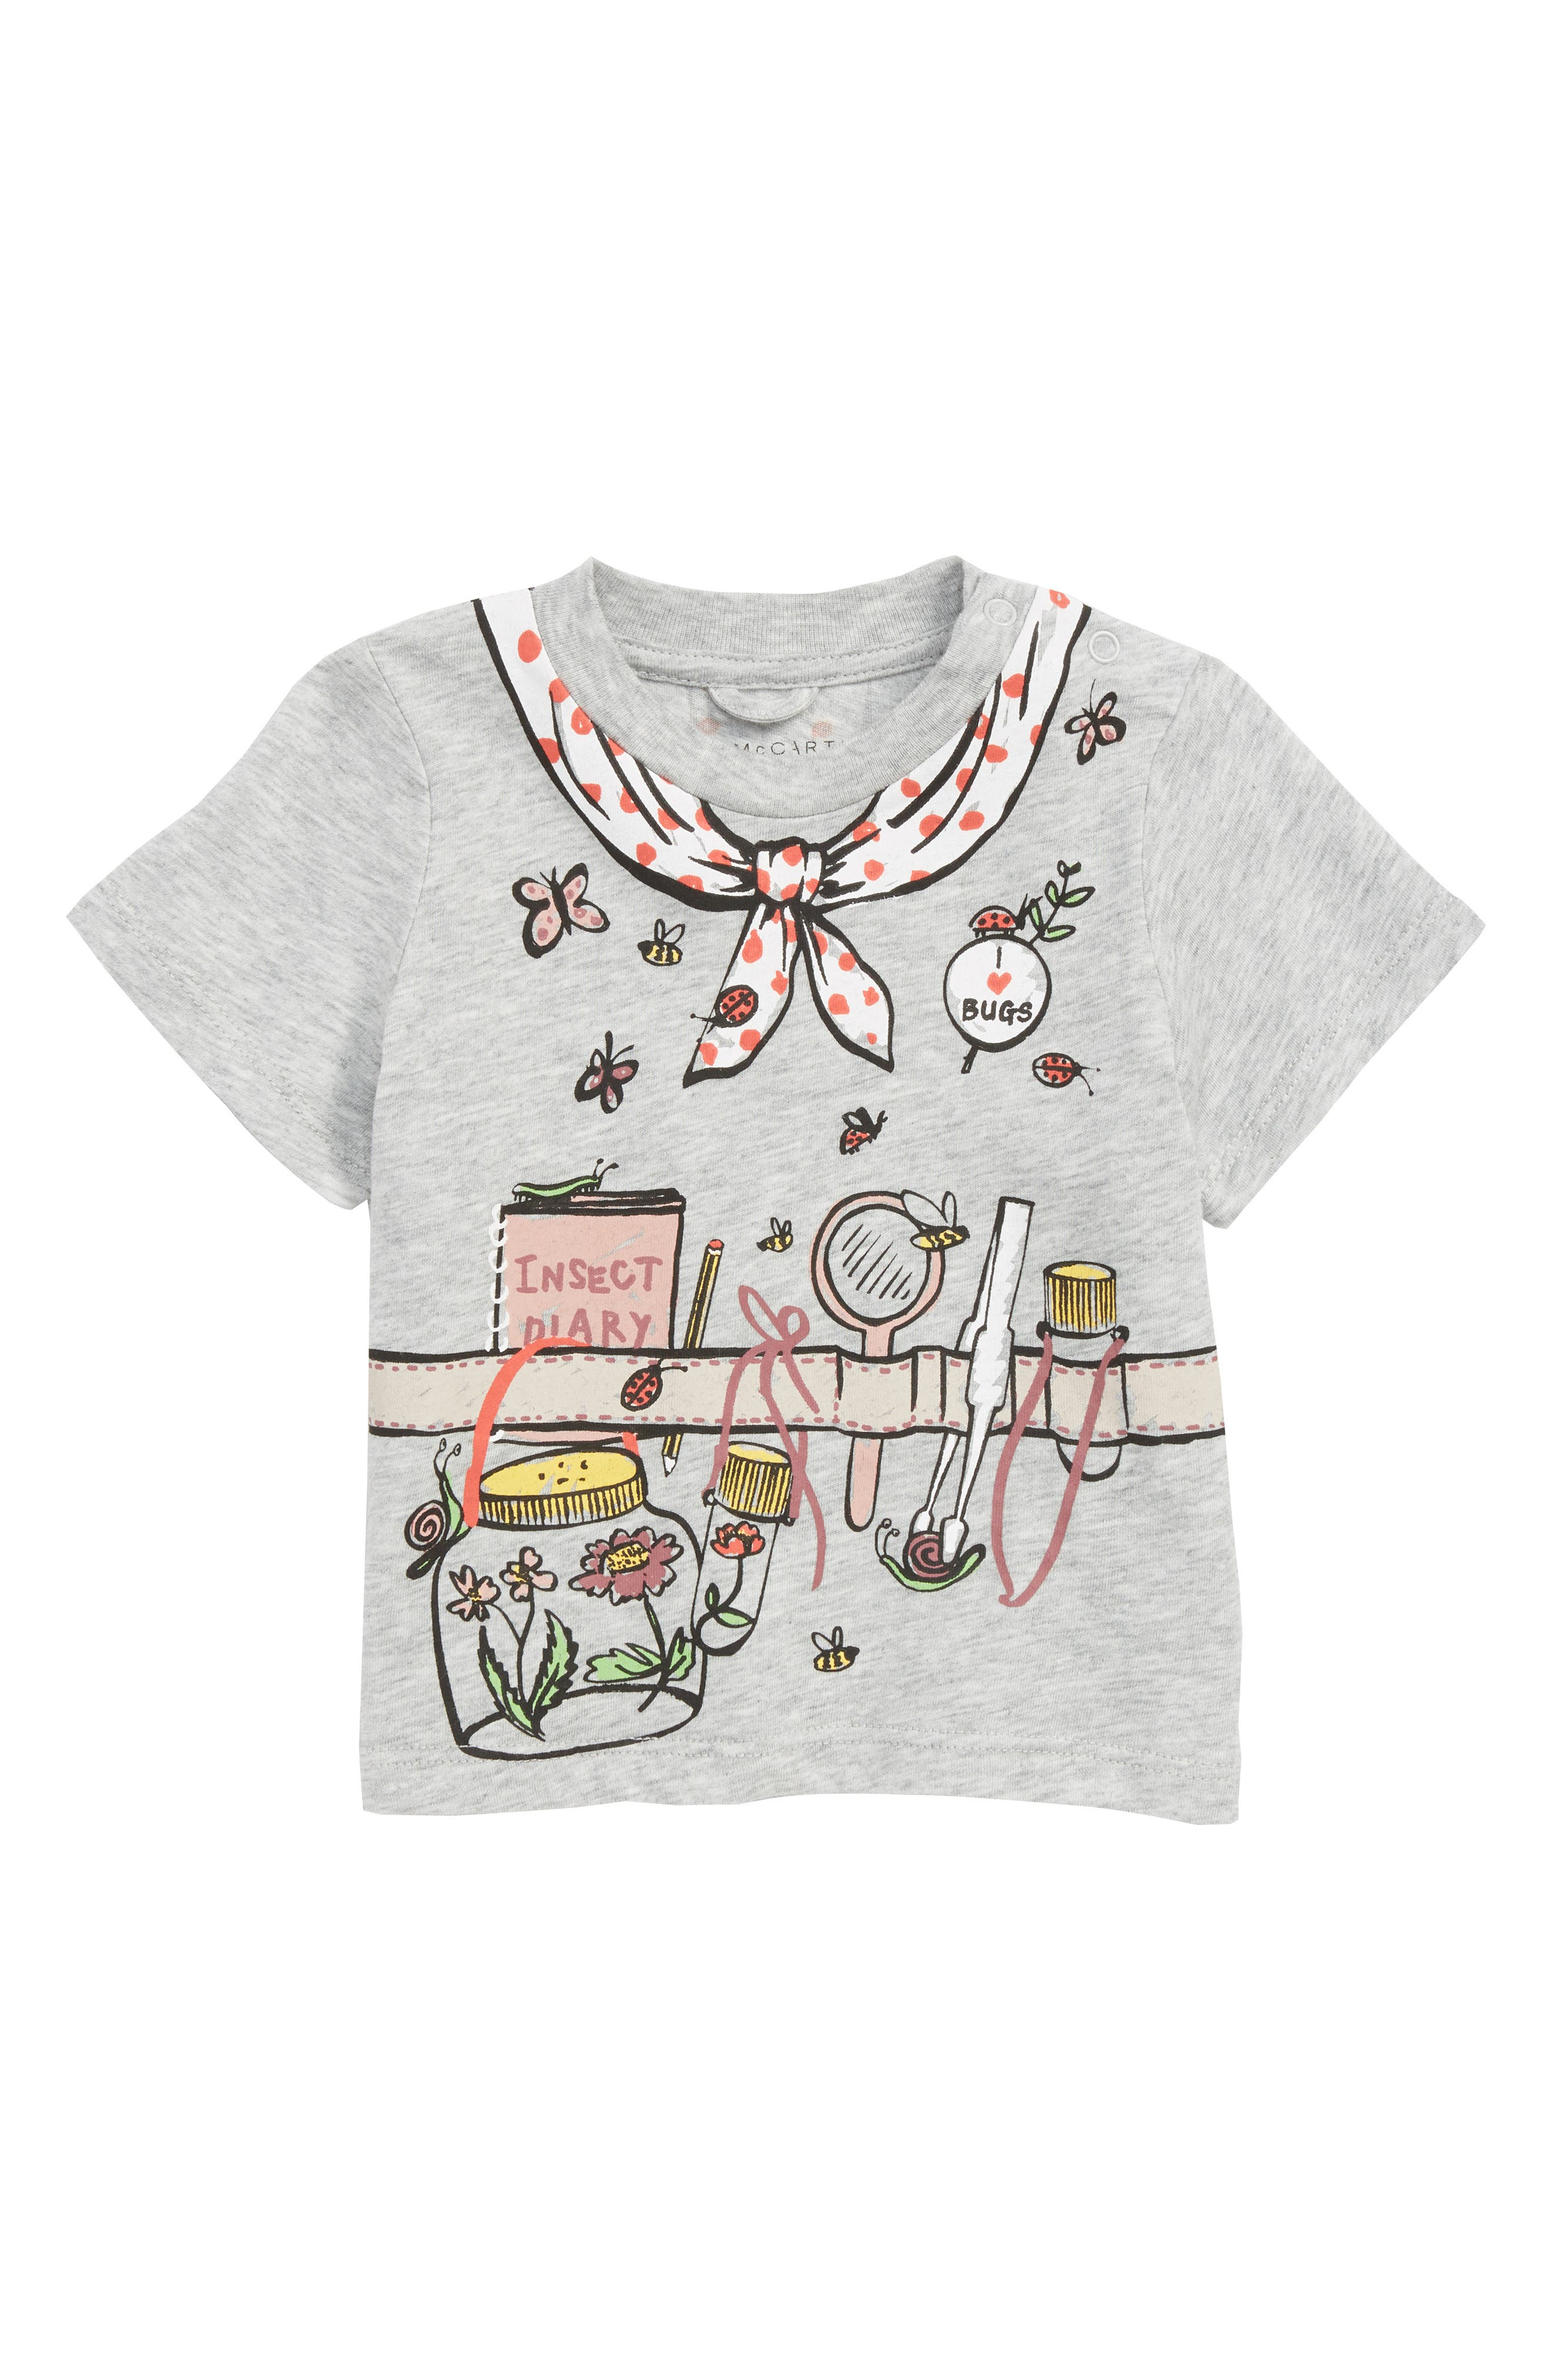 Chuckle Graphic Tee,                         Main,                         color, 020